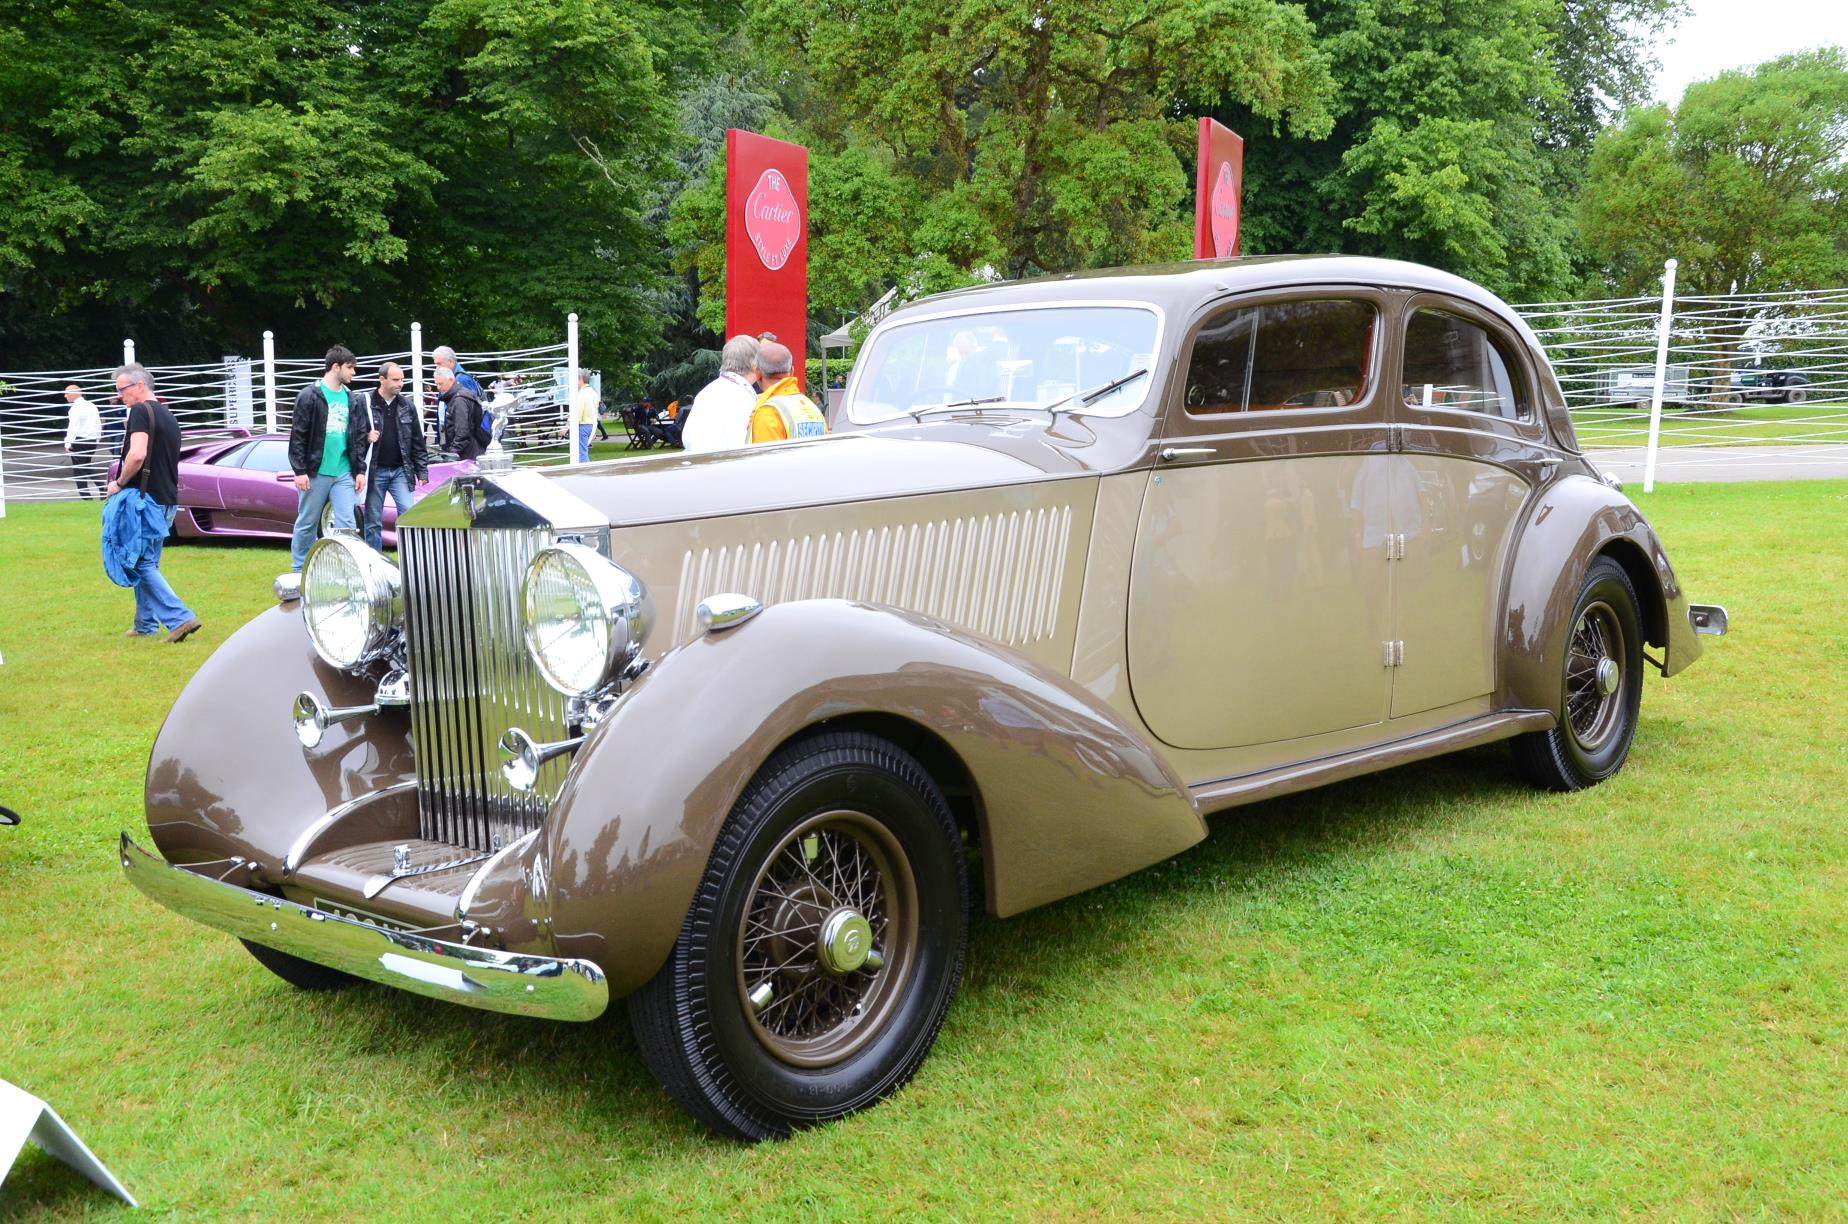 1937 Rolls RoycePhantom III Gurney Nutting Sports Saloon